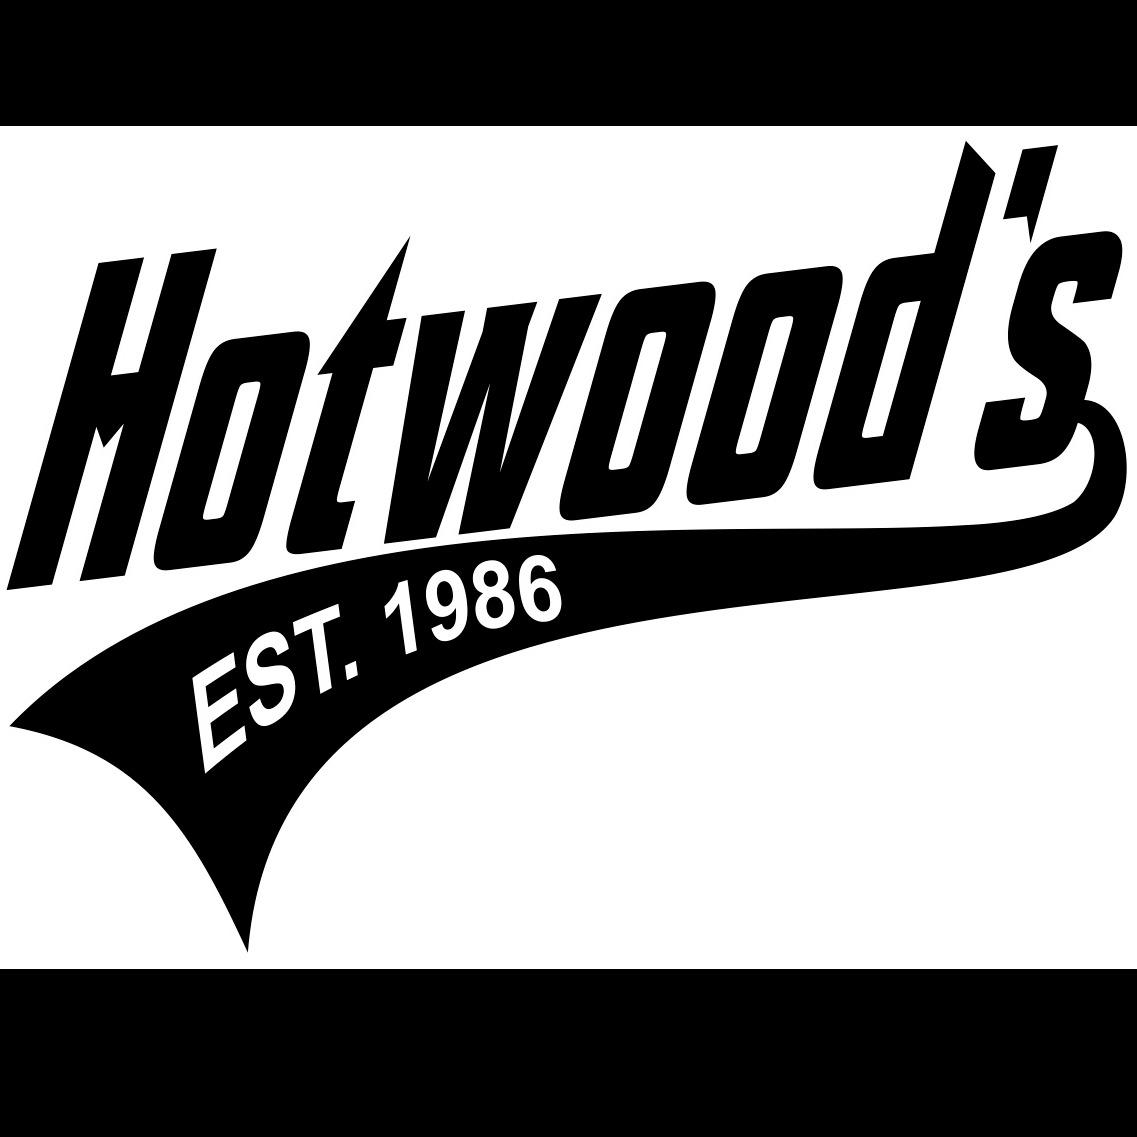 Hotwood's